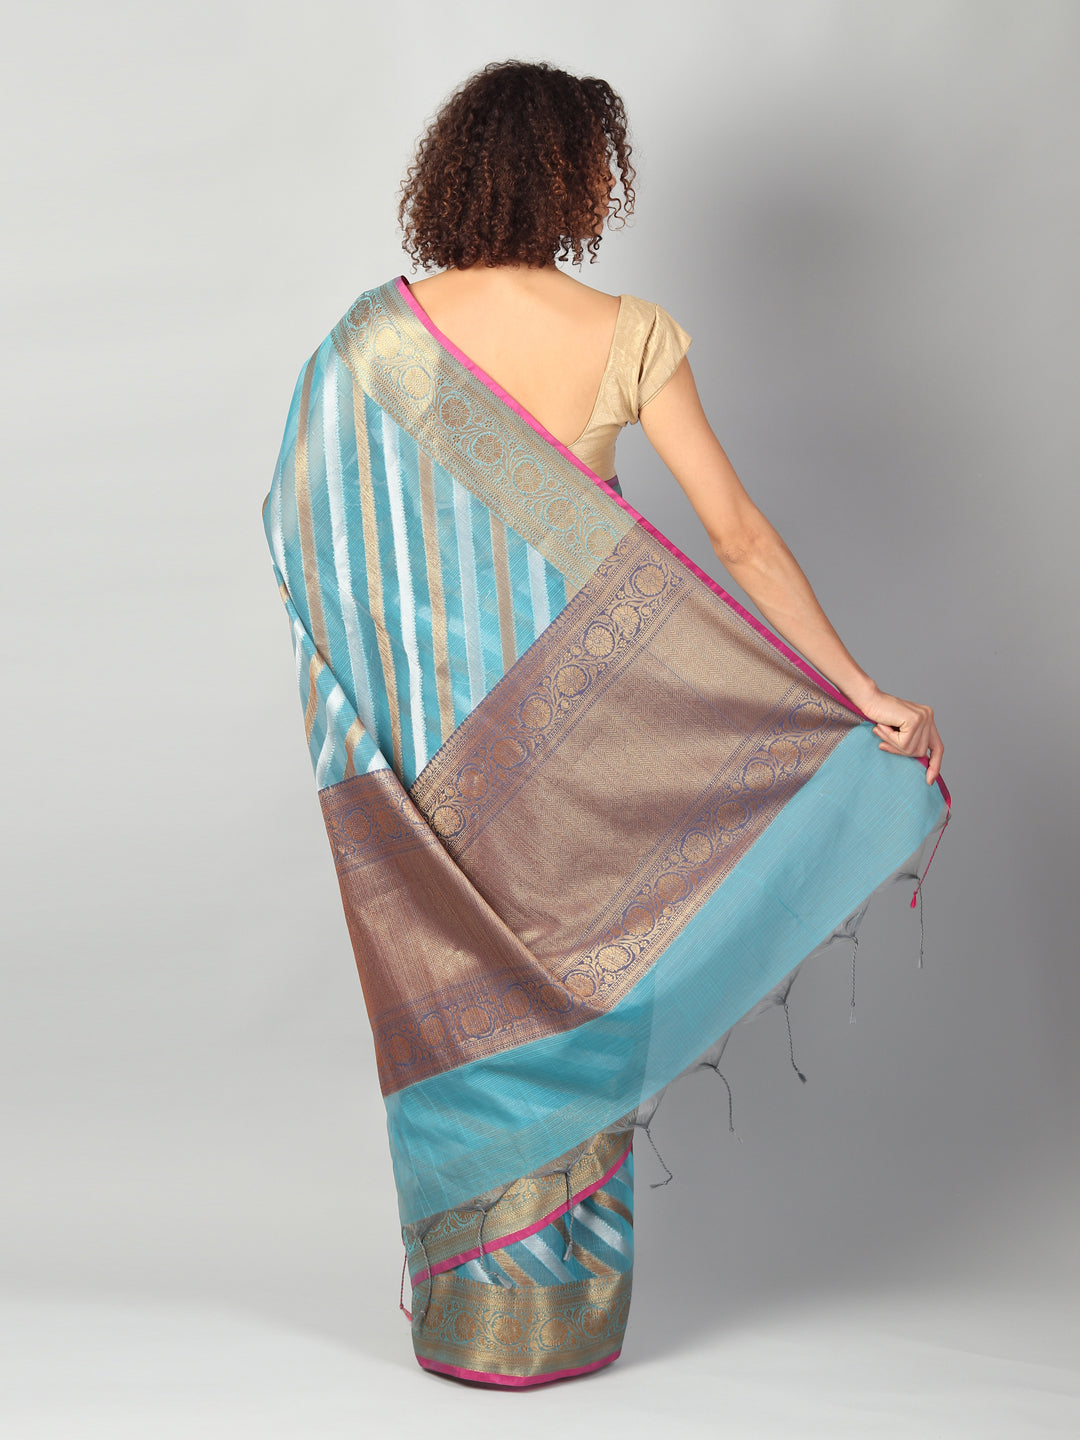 Kota saree with diagonal striped of blue & gold allover and zari border